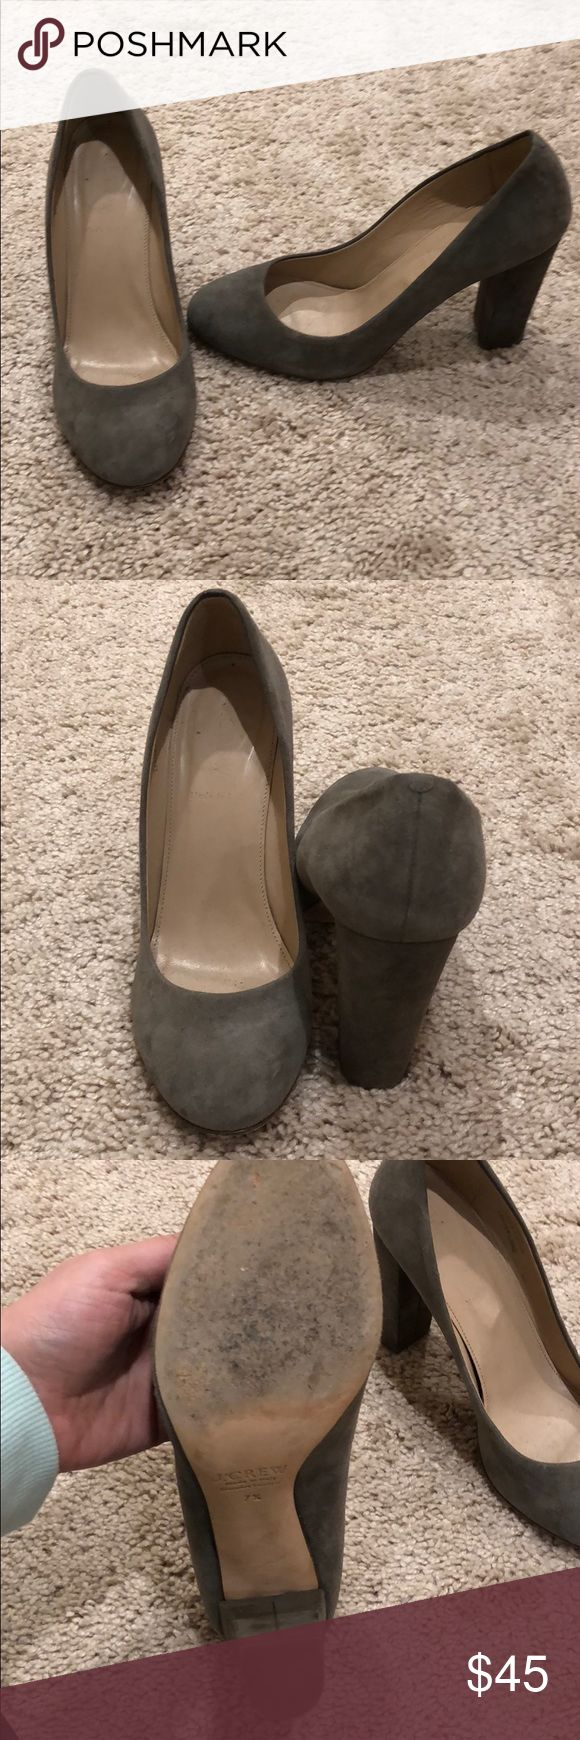 Jcrew suede grey block heel Round toe suede block heel. Grey. Wore a few times for work but a bit too small on me. No major signs of wear. Heels are a little darker grey. EUC. About a 4 inch heel. J. Crew Shoes Heels